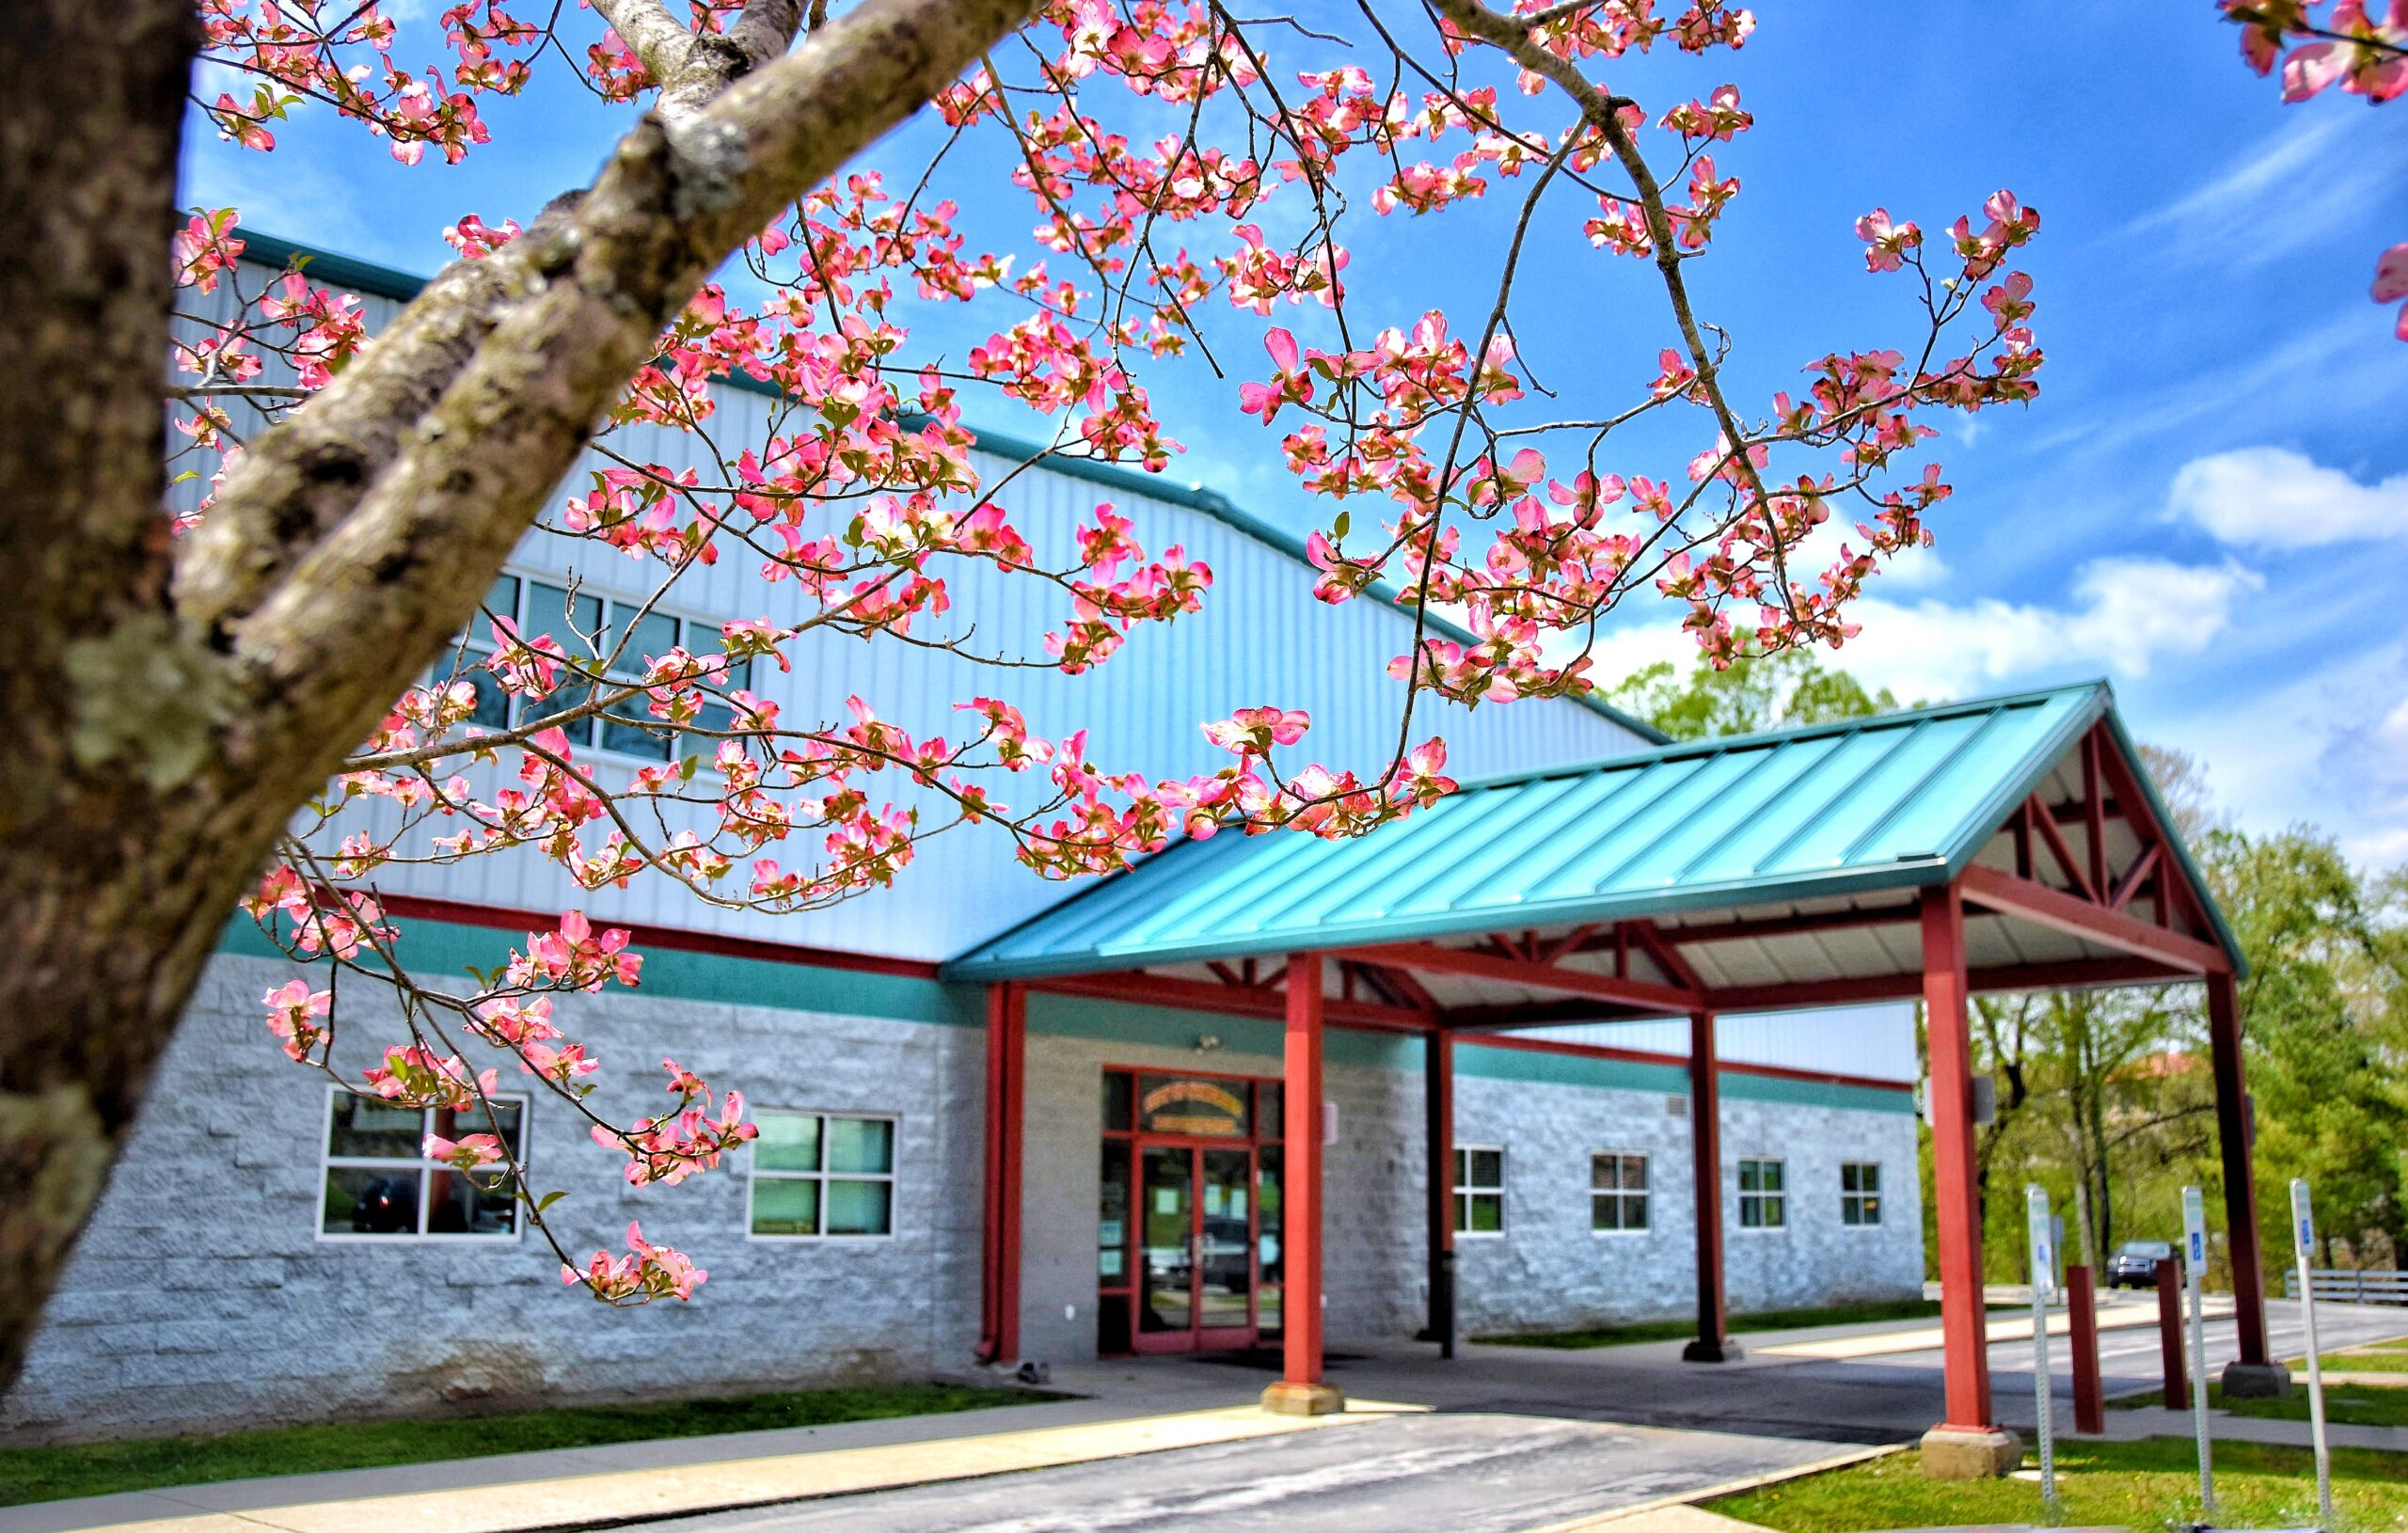 recreation center building with pink blooming tree in foreground